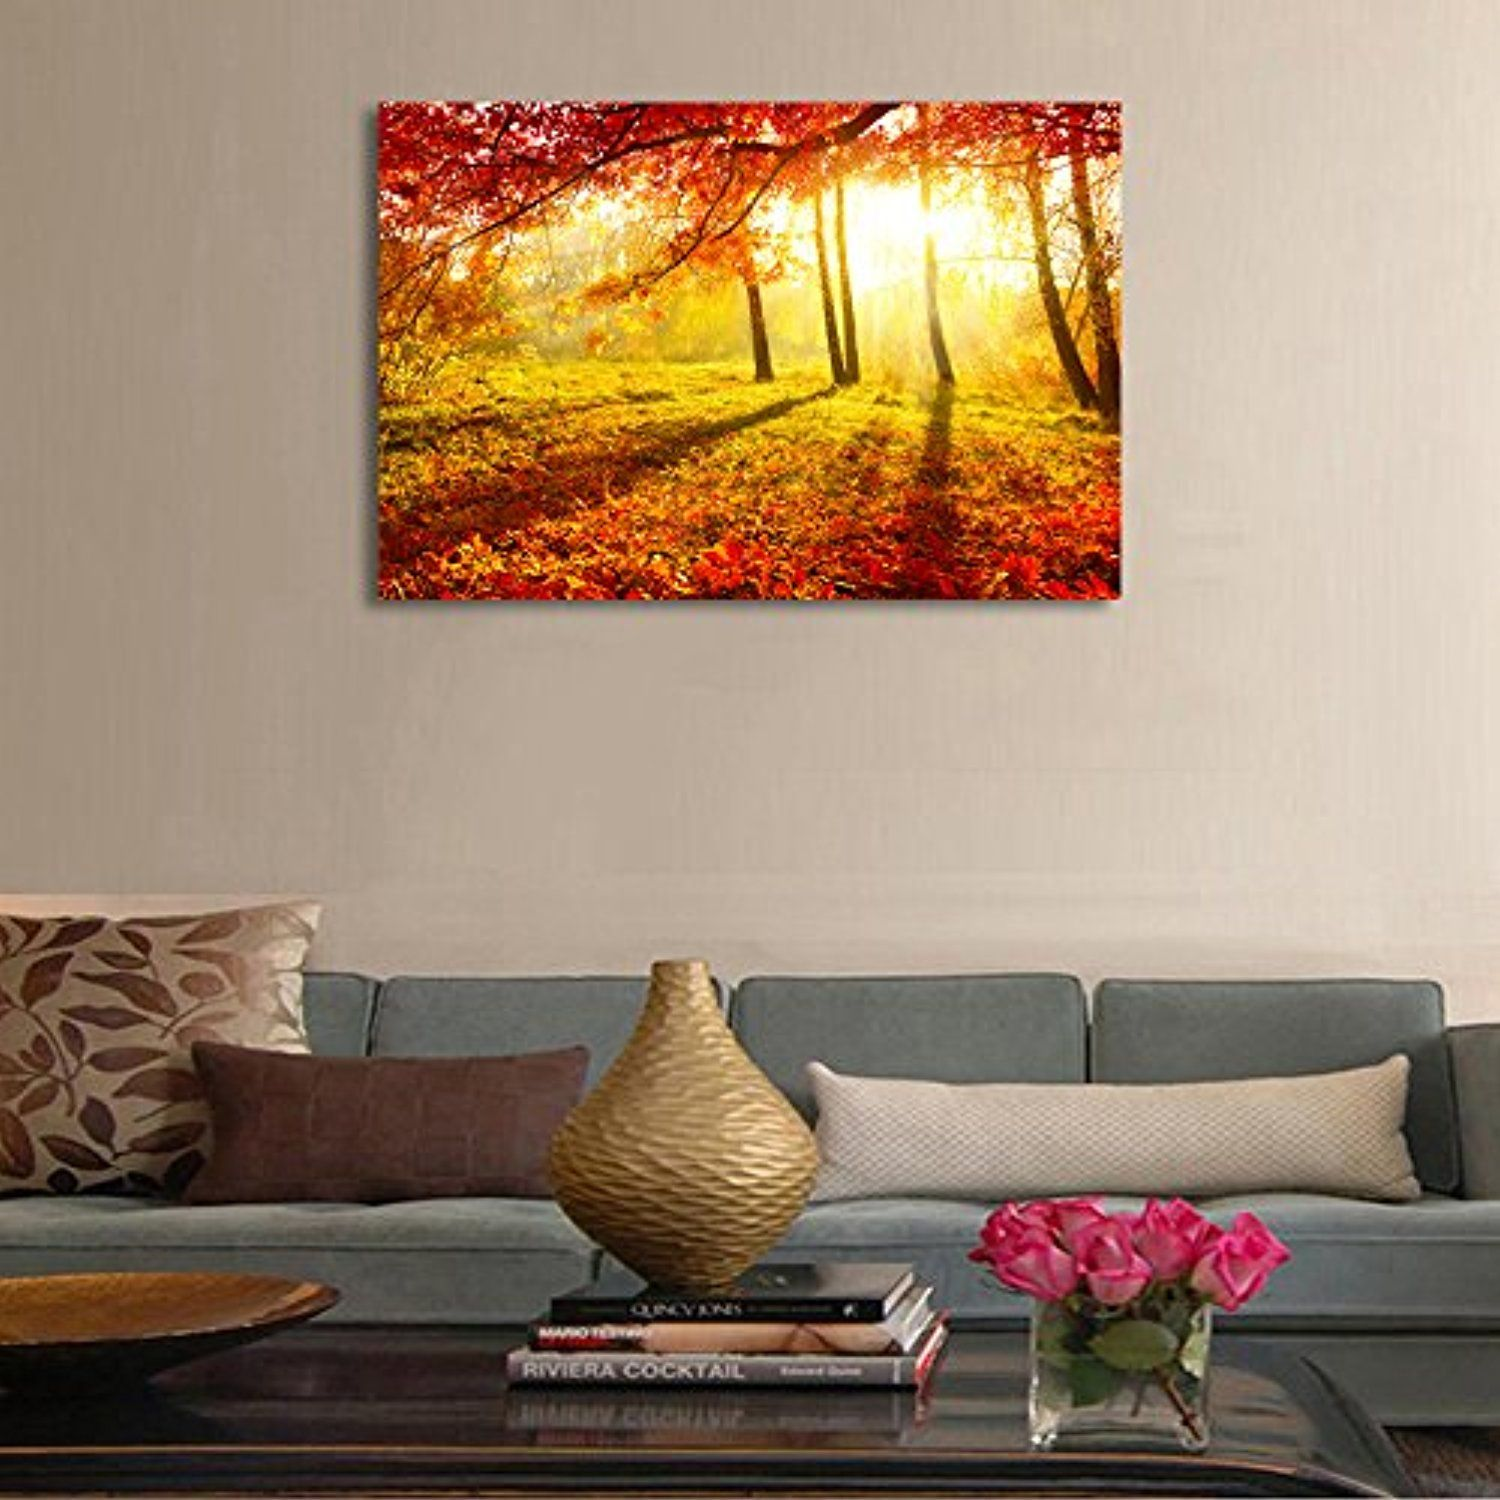 Large art prints Home Decor Canvas Painting Wall Art Red autumn scenery